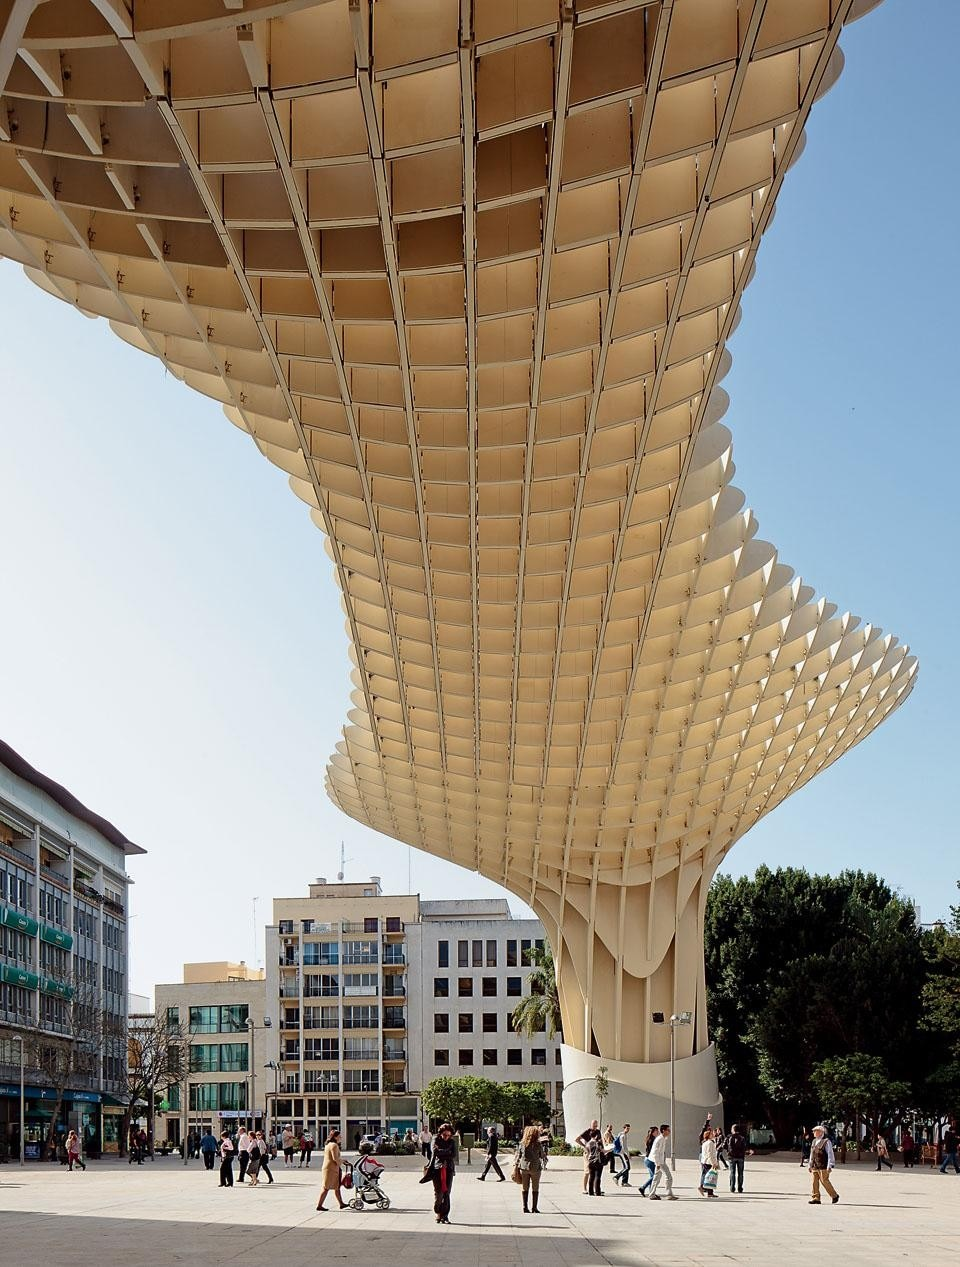 The frame is made of wood